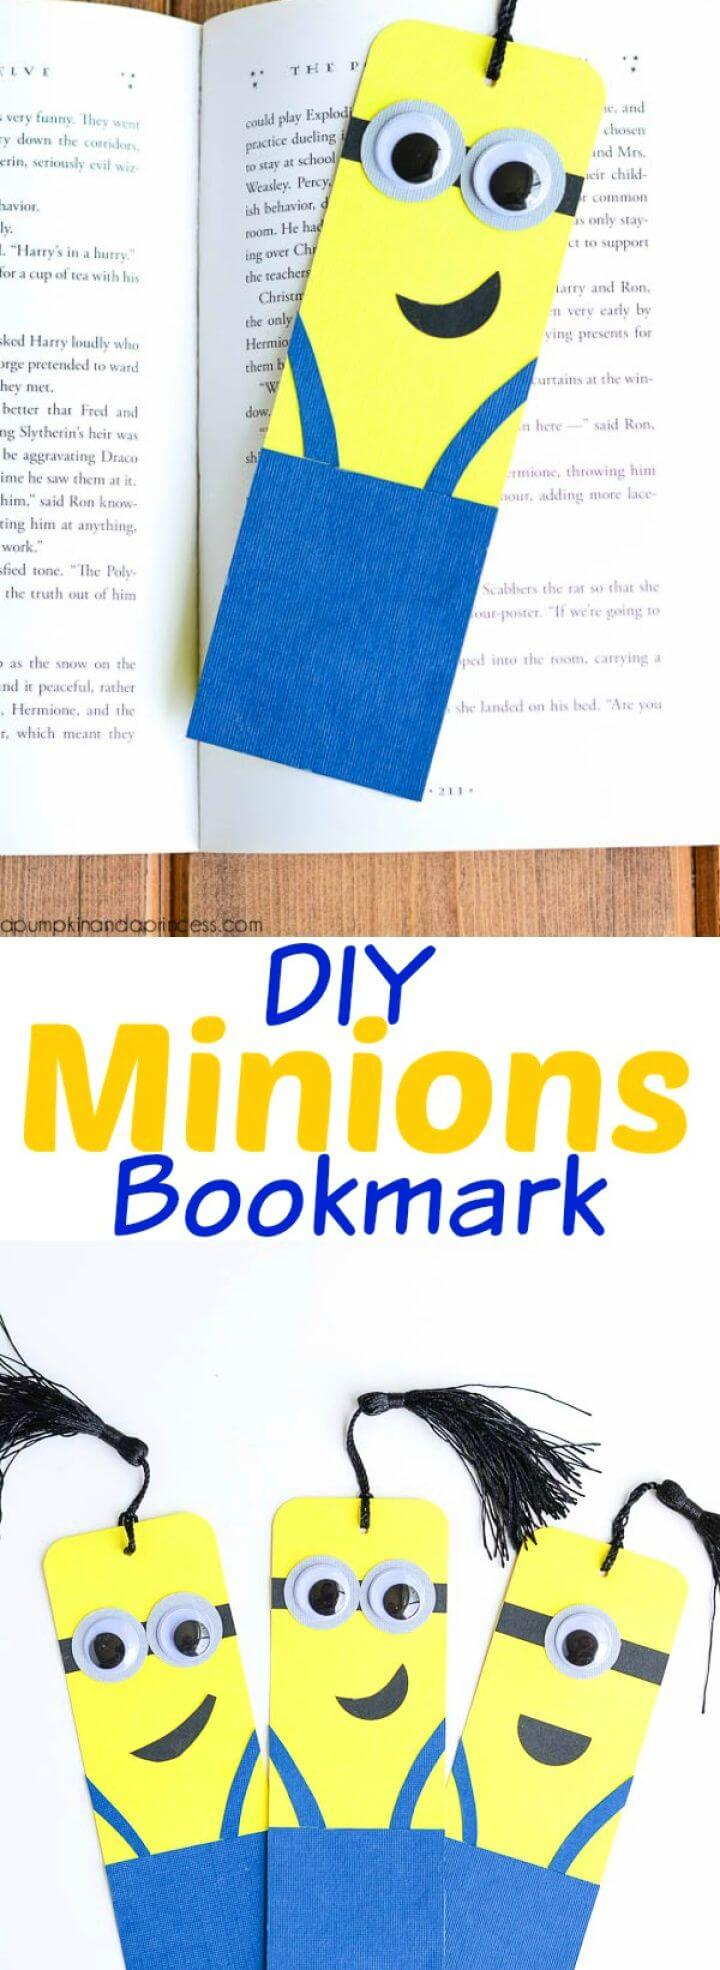 Build A DIY Minion Bookmarks